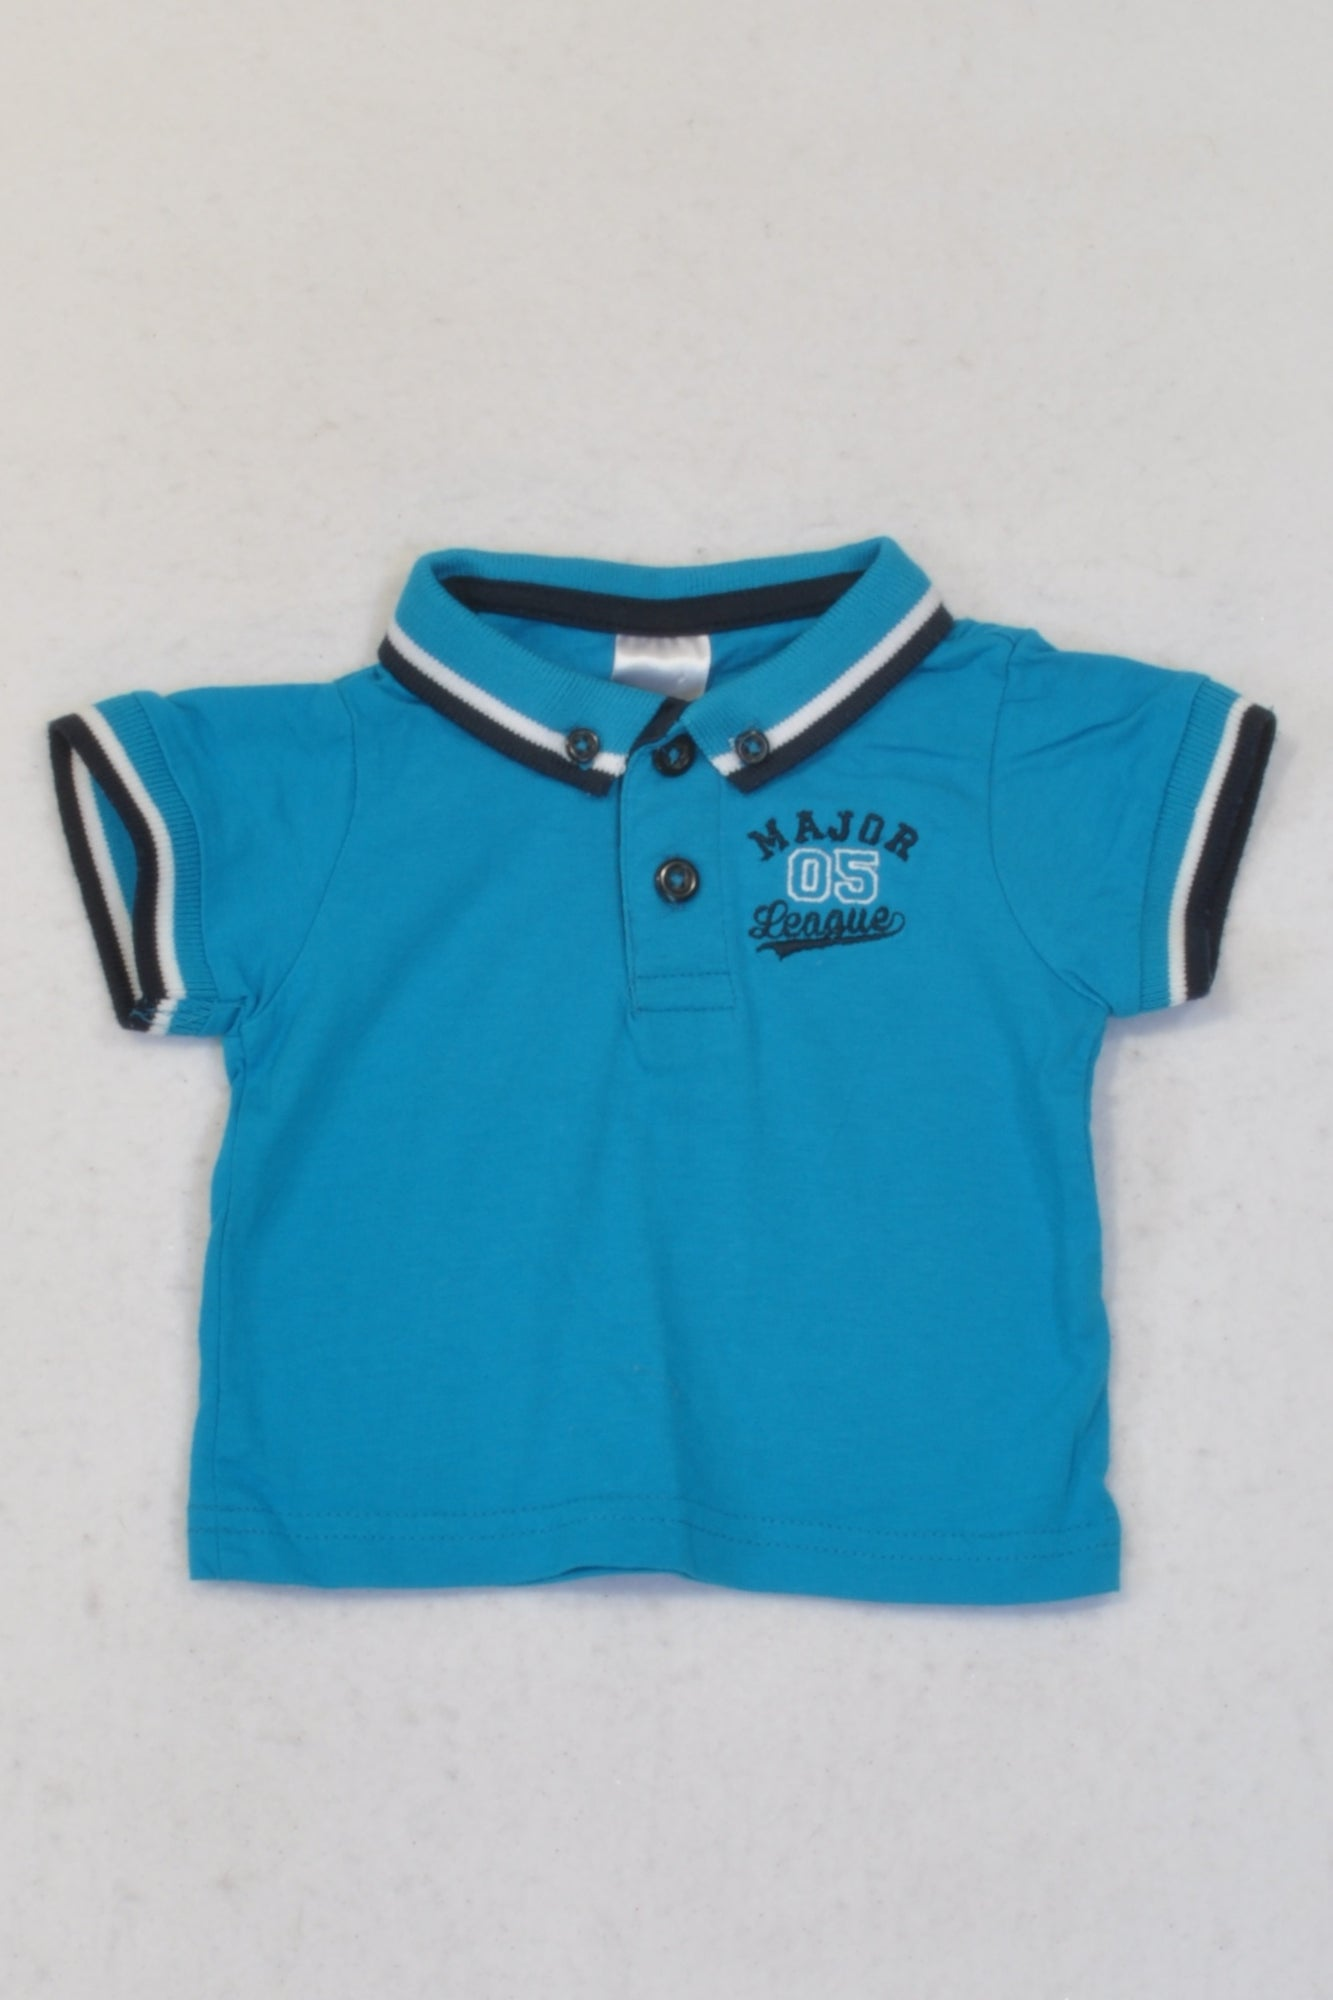 Edgars Blue & Black Trim Golf T-shirt Boys 0-3 months